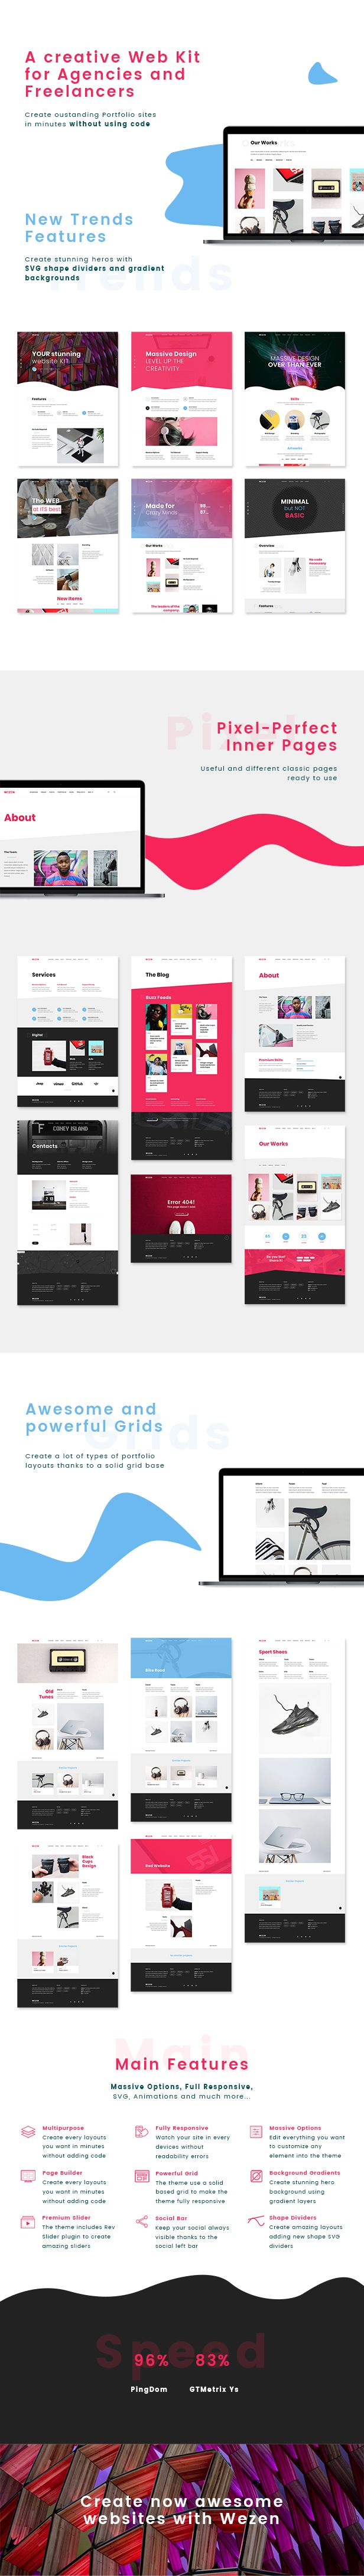 Wezen is a result of many years of experience on Theme's Development. The theme presents massive options and a stunning design.  Gradient Backgrounds, SVG shapes are the main features of this theme. Wezen is fully animated and responsive because it's uses a solid and fully customizable responsive grid ( Bootstrap based ),